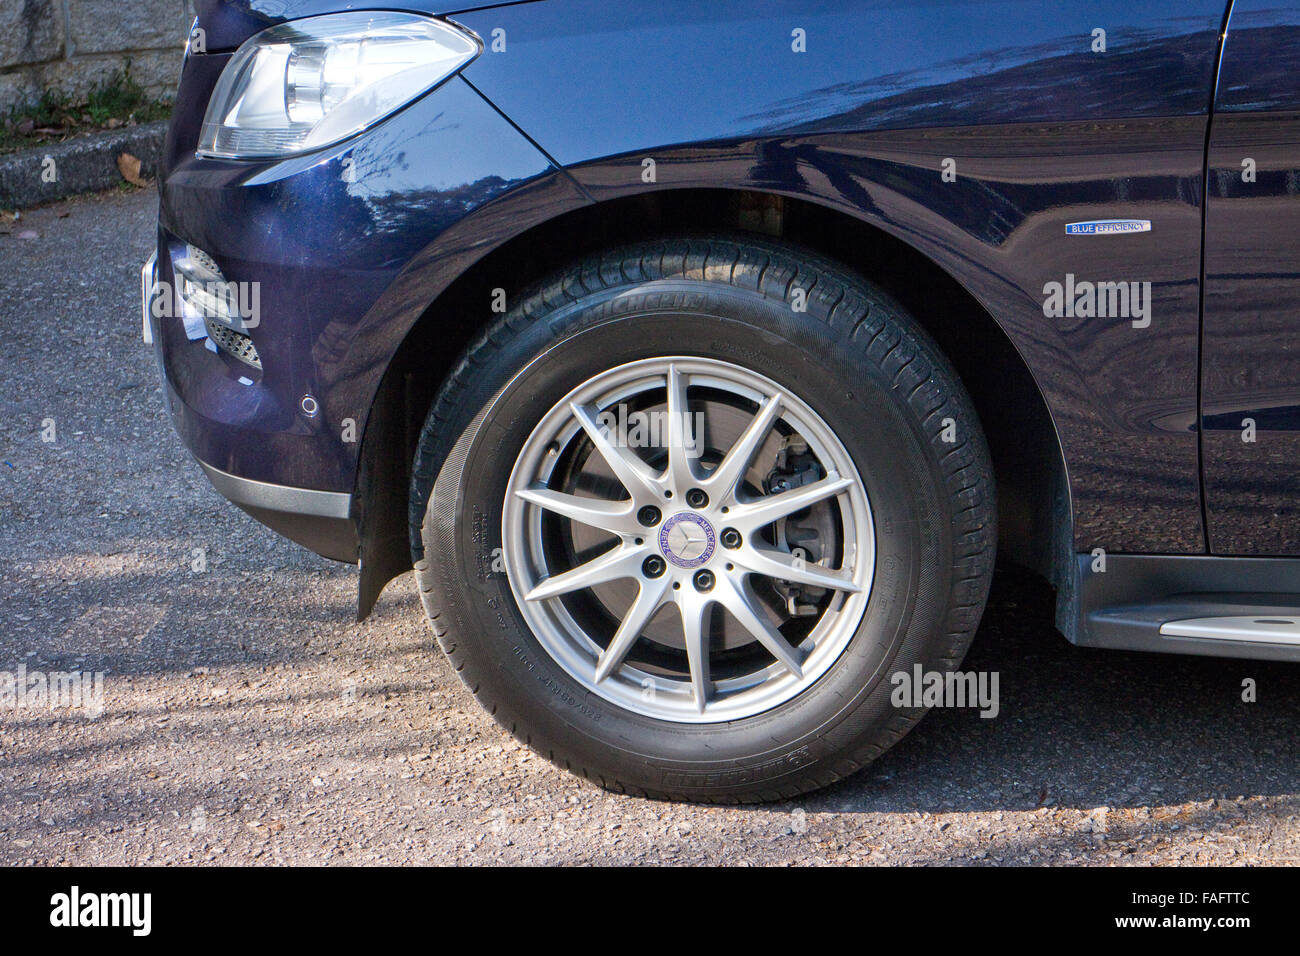 Hong Kong, China Jan 27, 2014 : Mercedes-Benz ML-Class BlueTec 2014 Model wheel on March 27 2014 in Hong Kong. Stock Photo